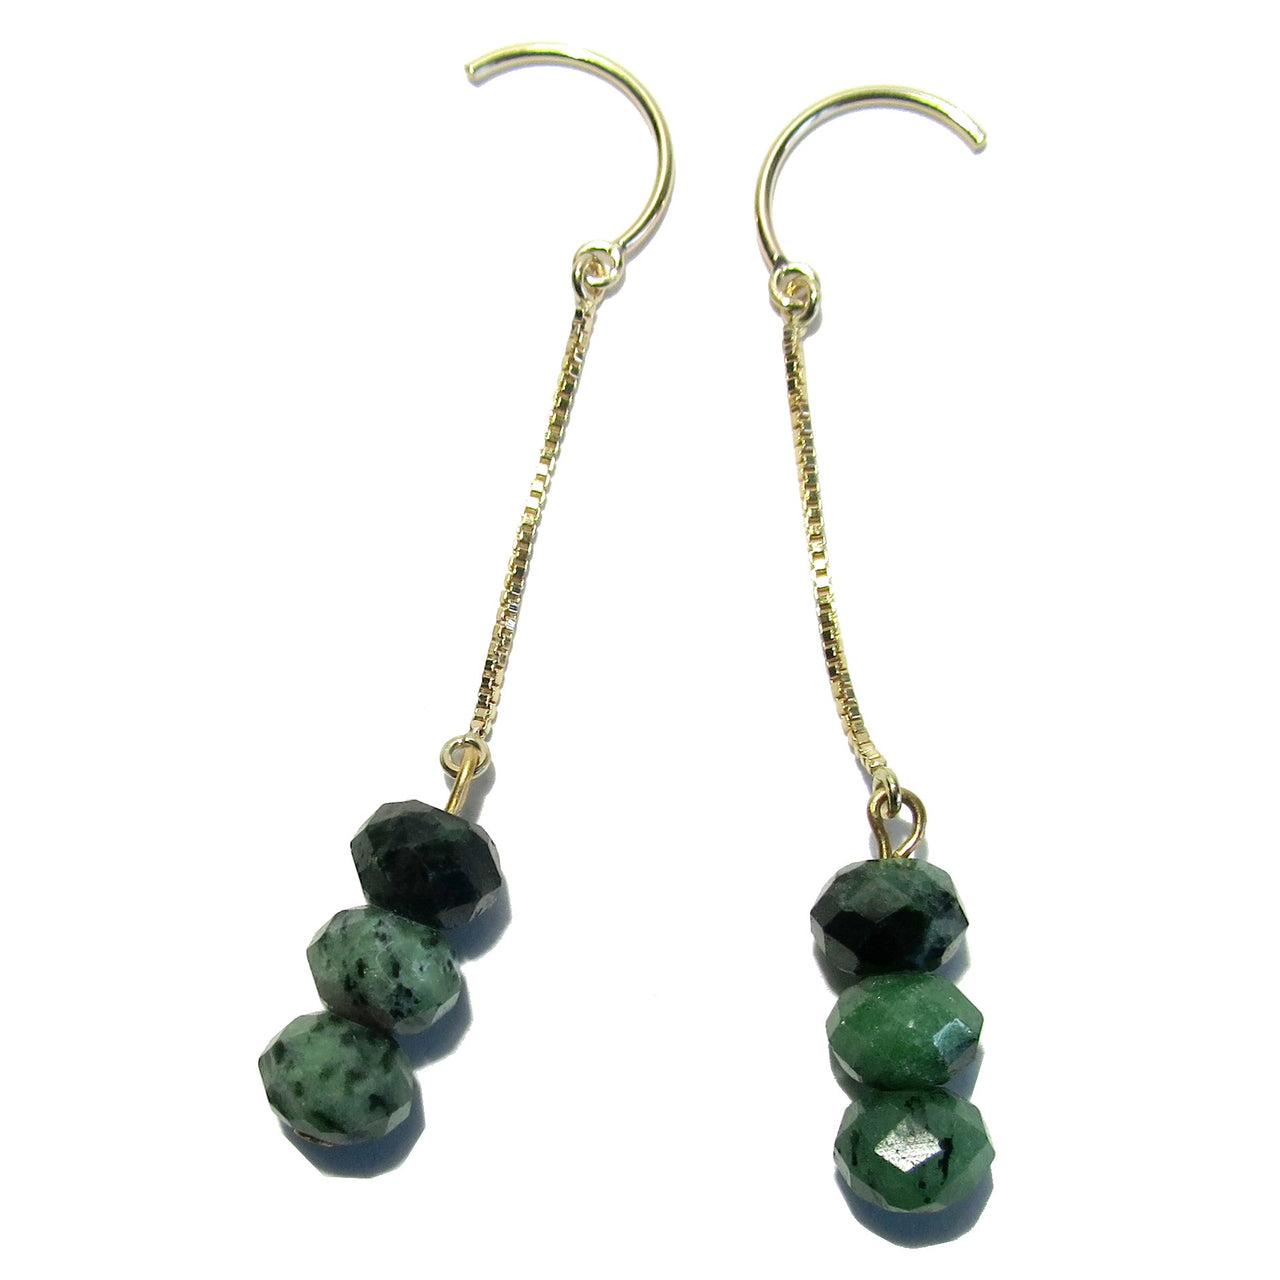 "Ruby Zoisite Earrings 2.4"" Boutique 14 Karat Gold French Hook Faceted B02"